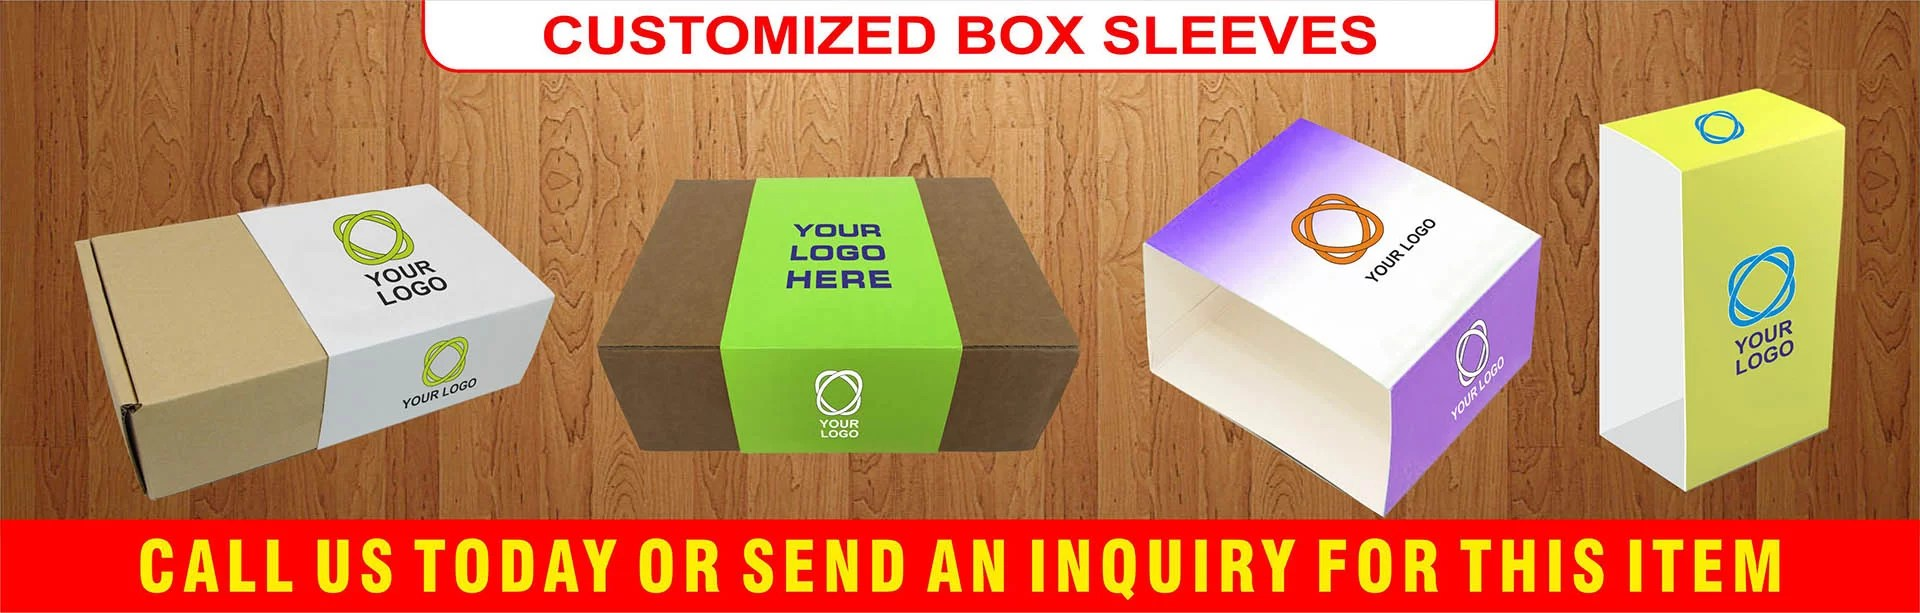 Box Sleeves Printing in Dubai, Box Sleeves, Print Box Sleeves in Dubai